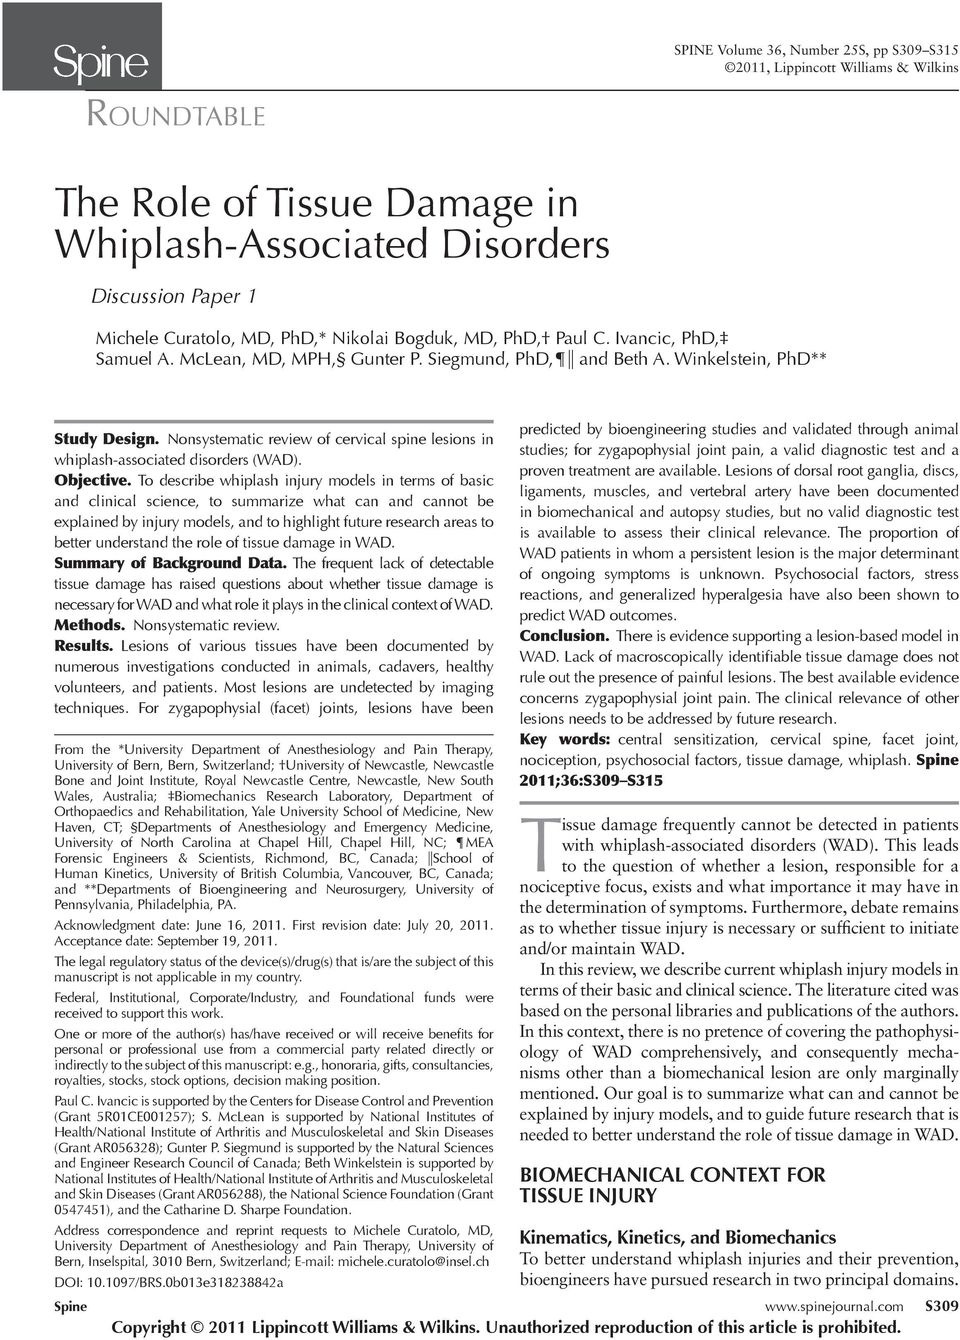 Nonsystematic review of cervical spine lesions in whiplash-associated disorders (WAD). Objective.